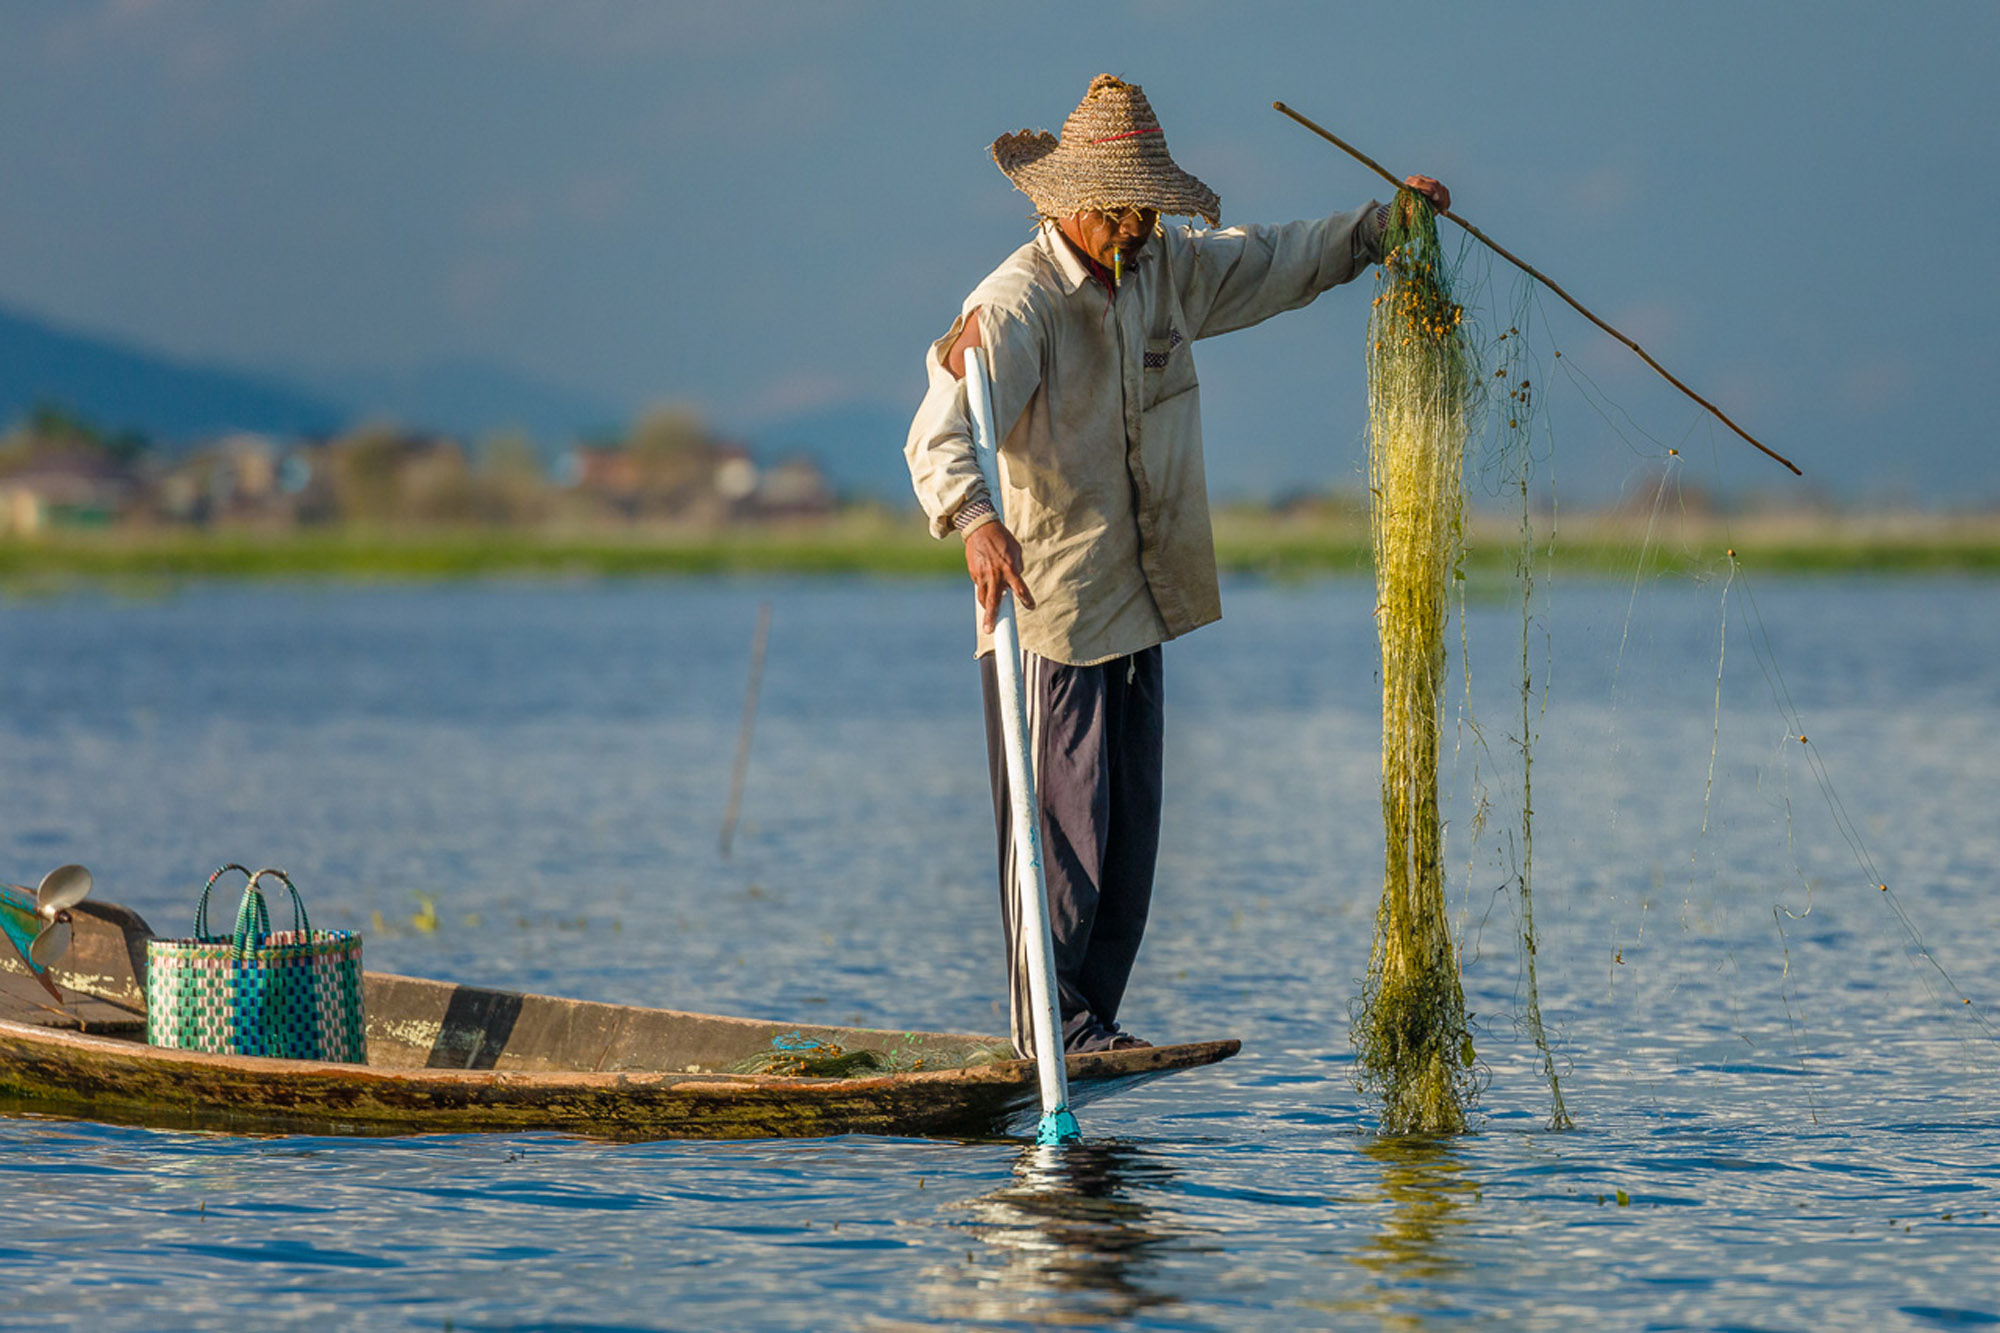 Traditional, sustainable fishing, Myanmar